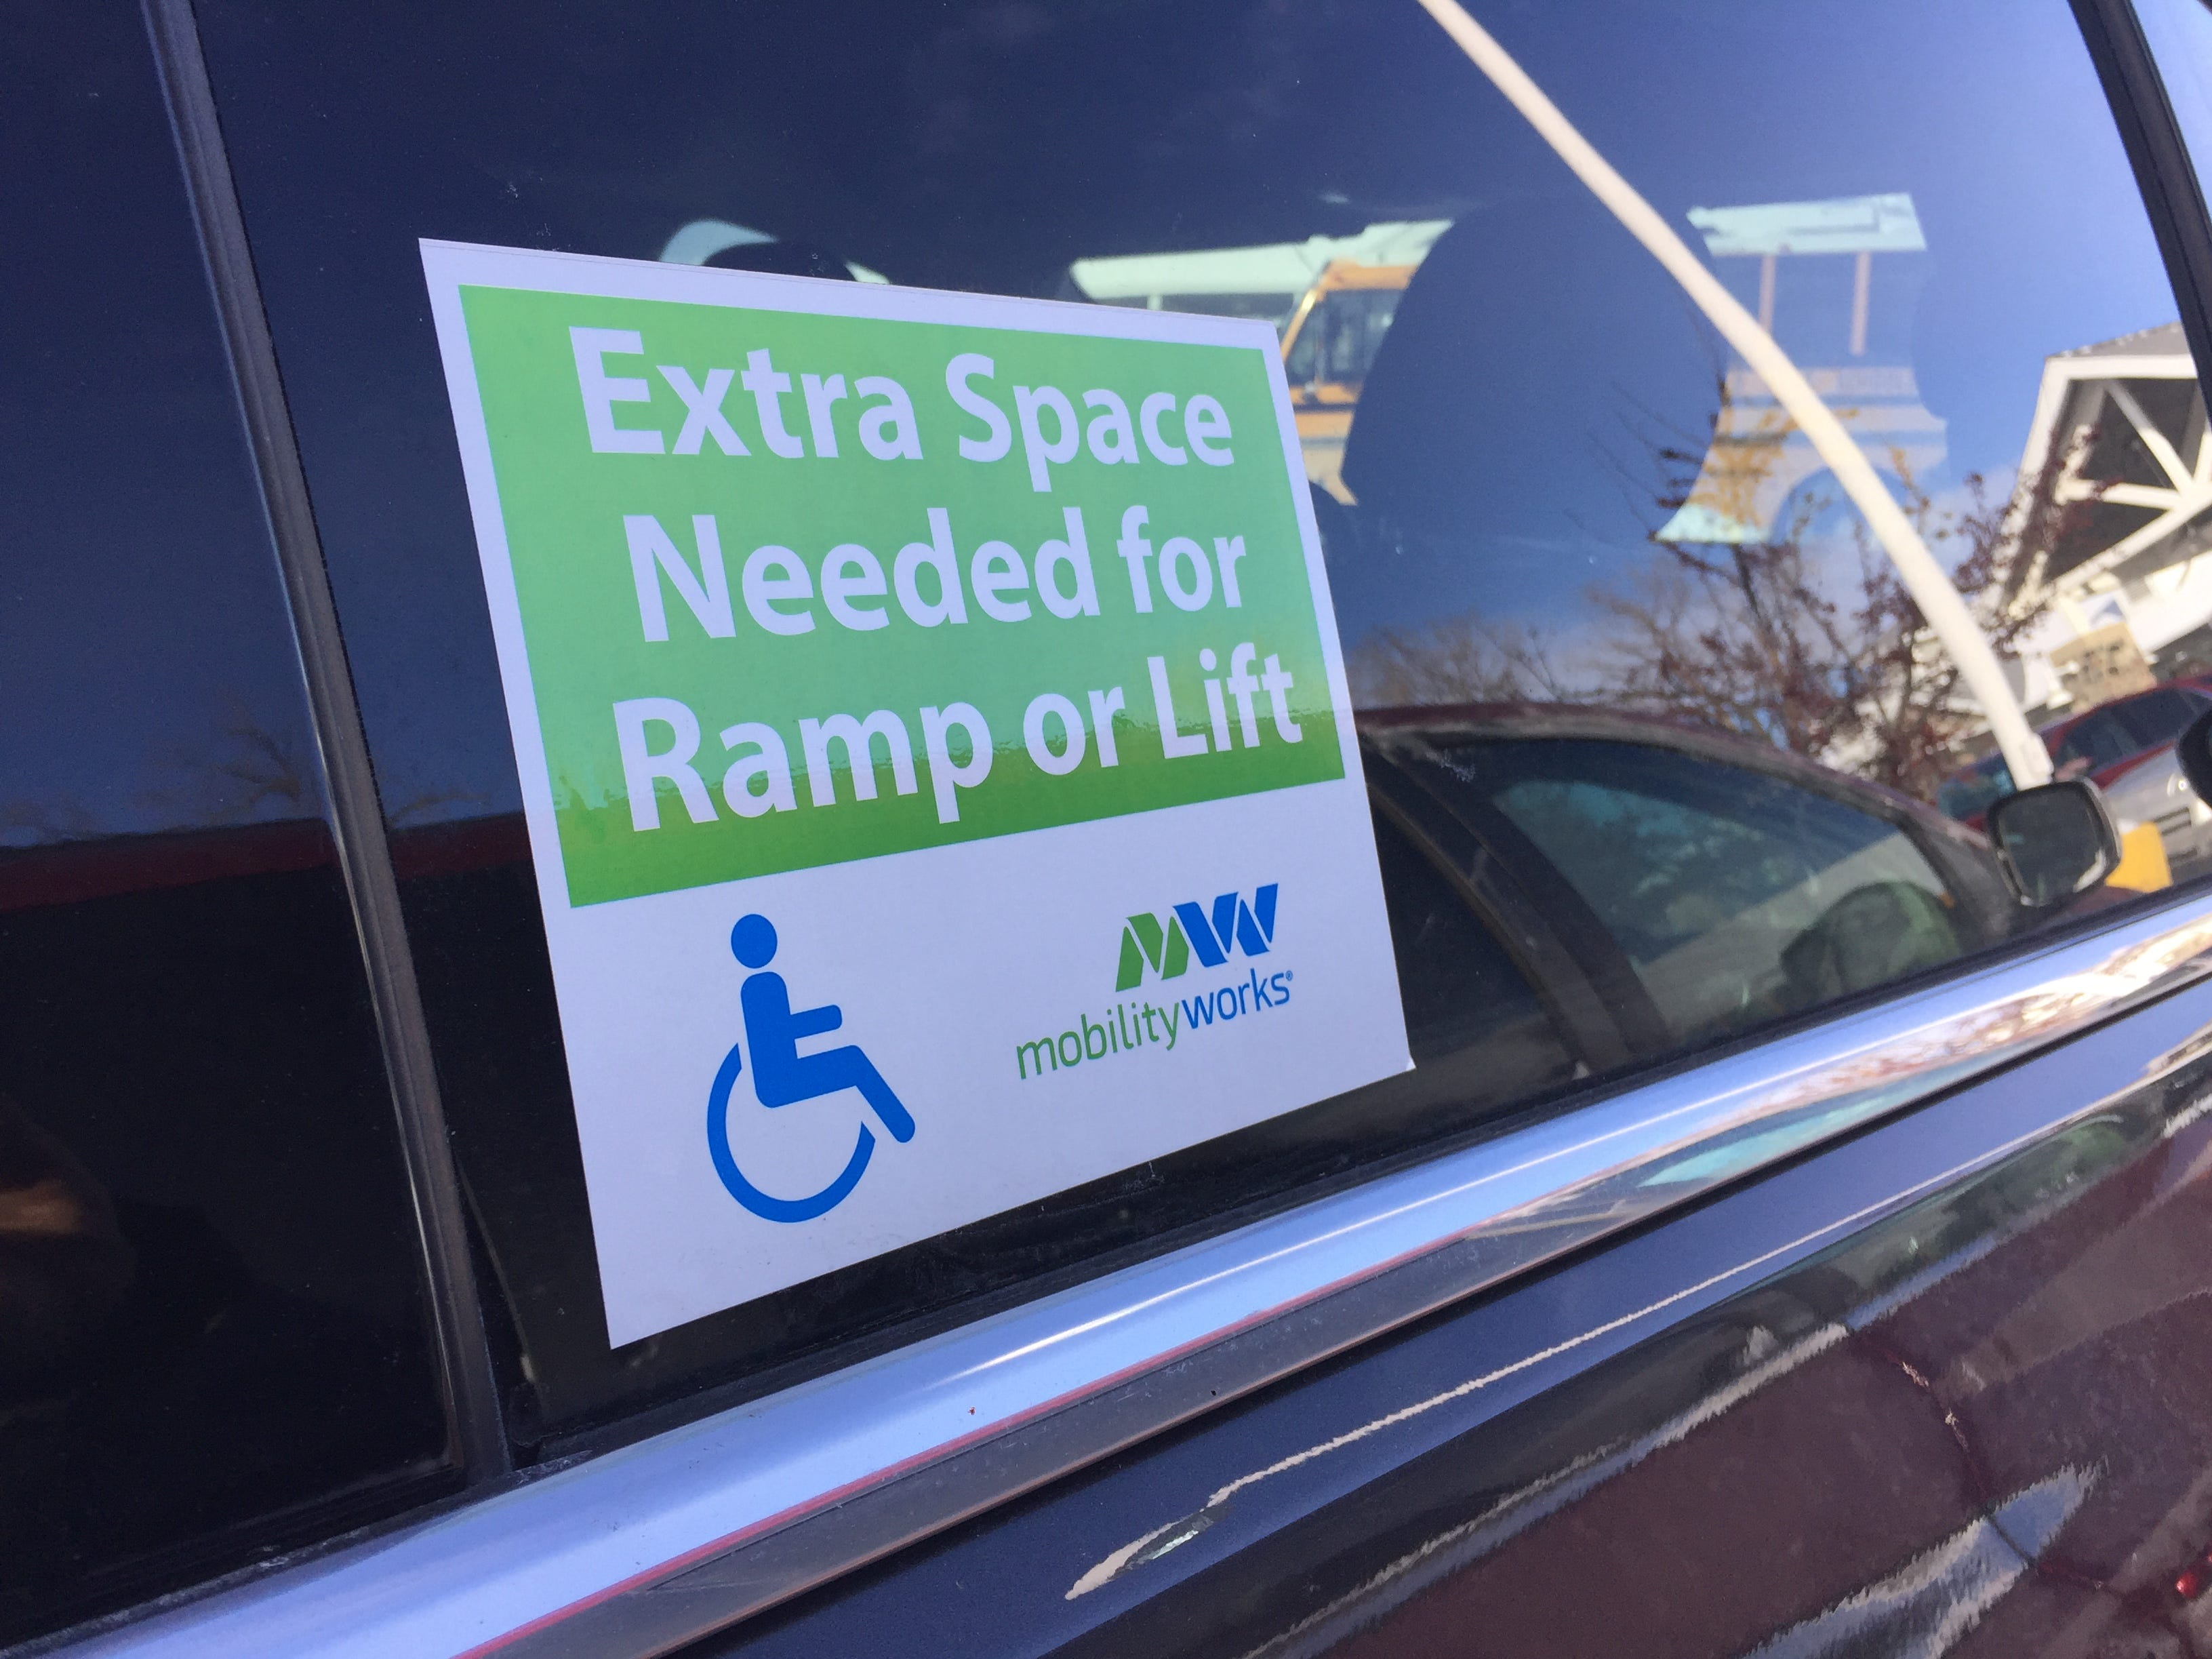 Next time you consider parking in a handicapped spot, don't.